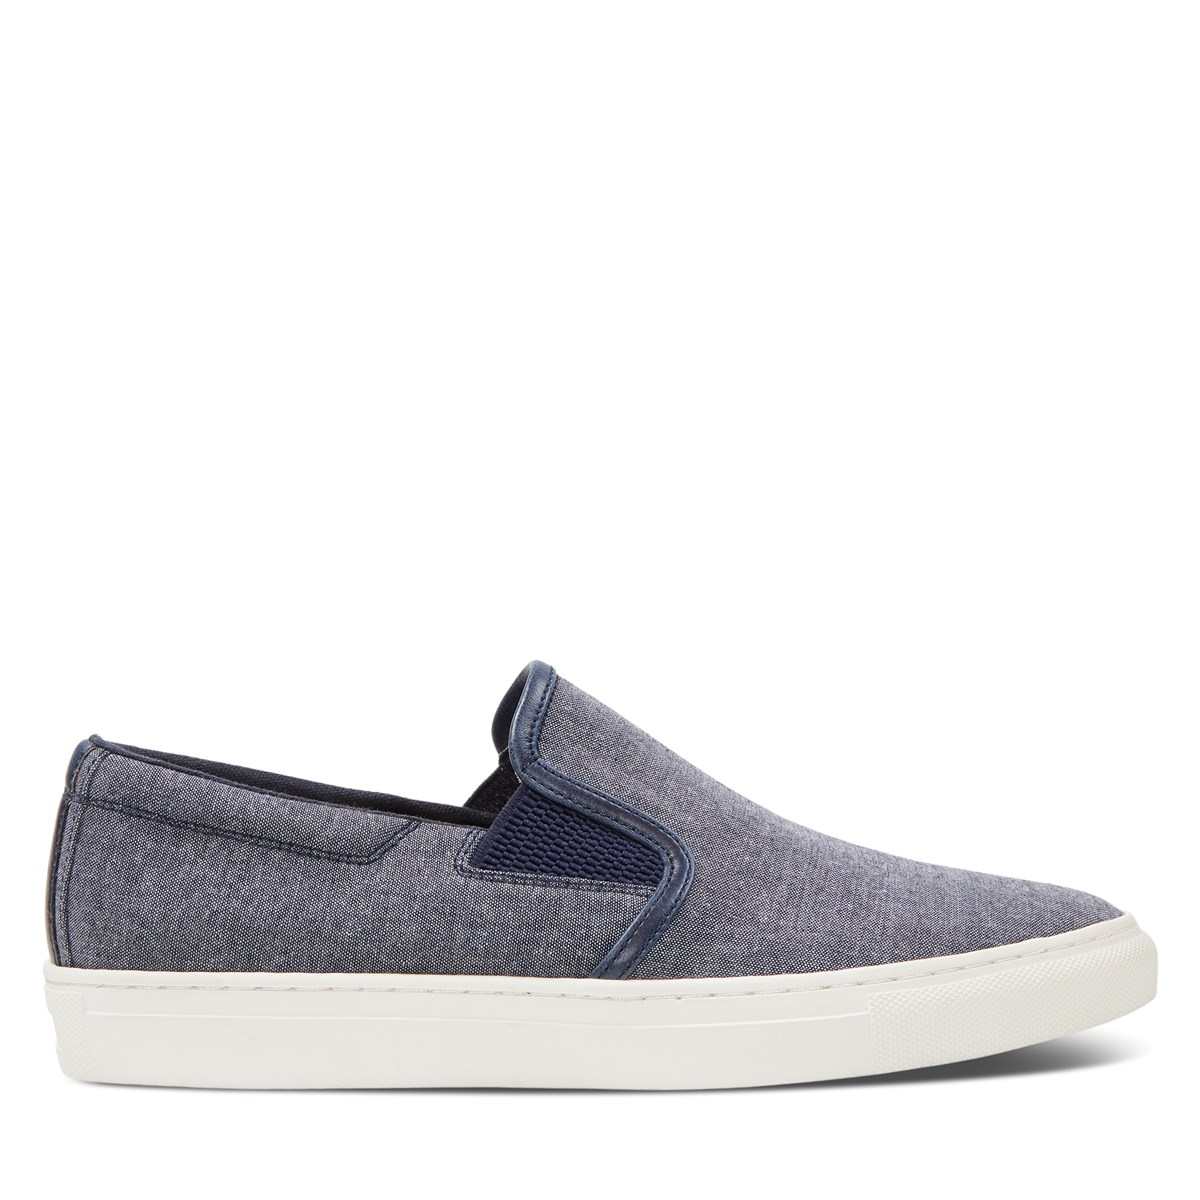 Men's Remy Slip-On Shoes in Blue Chambray